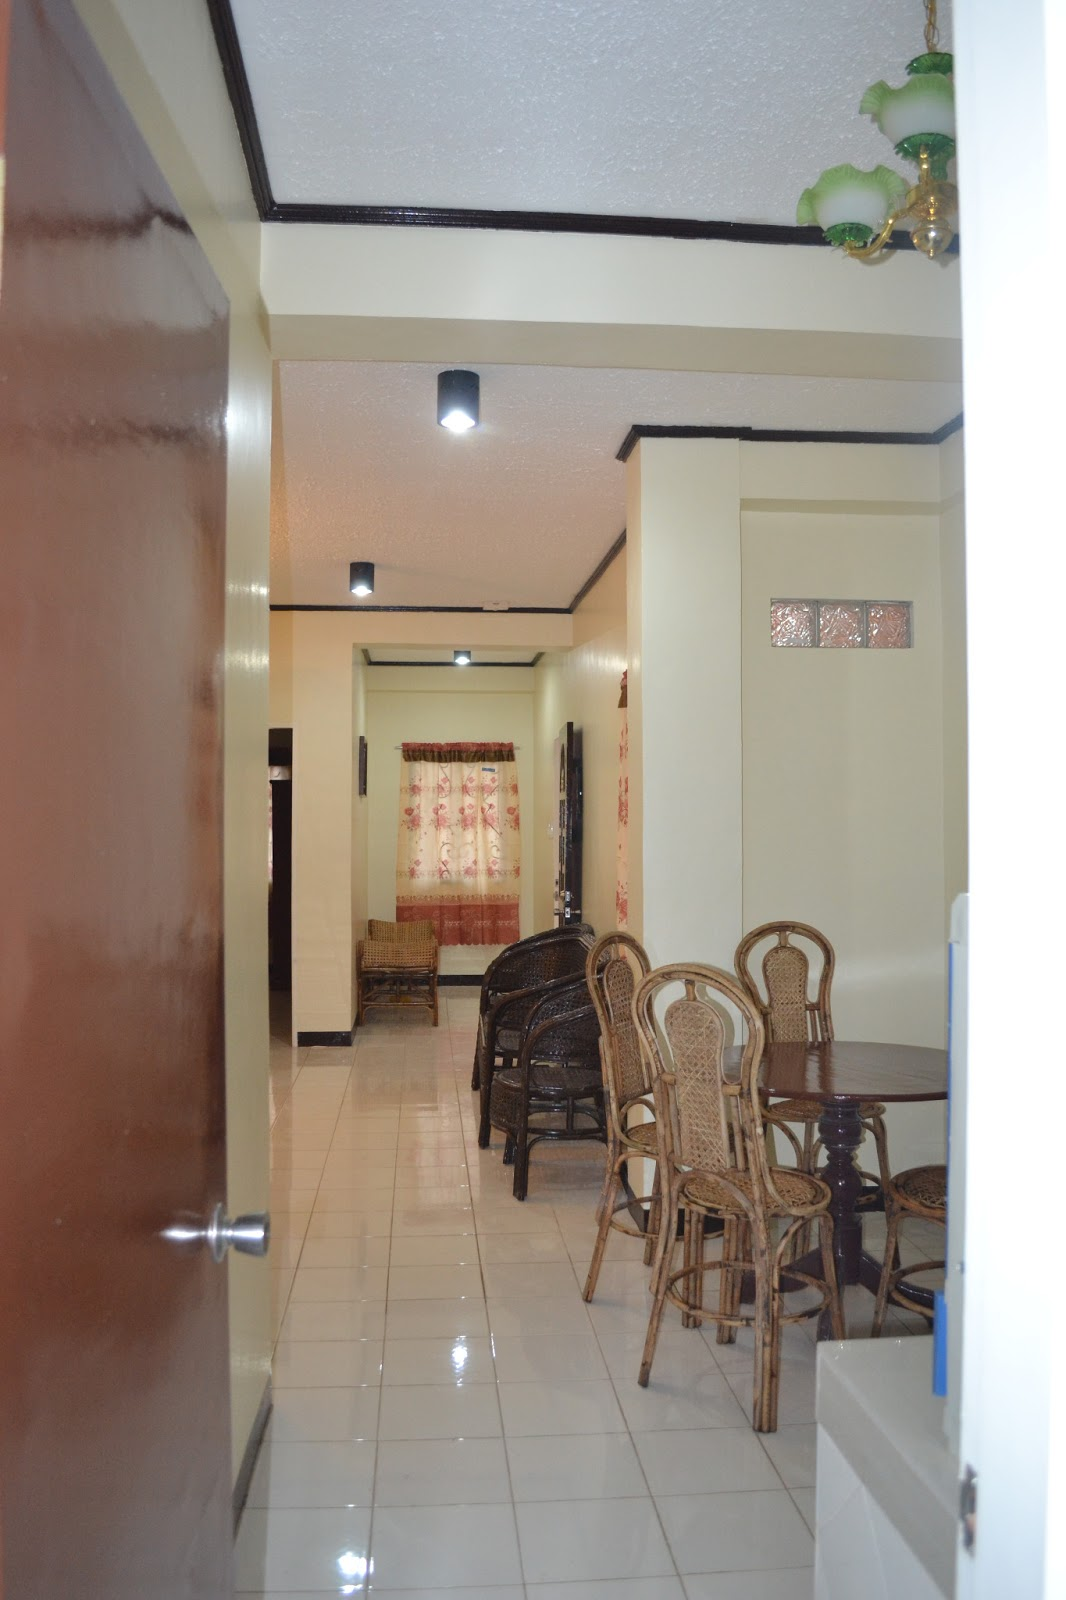 Ing A Fully Furnished Unit Is More Practicable Than Staying In Hotel It Er And Allows The Use Of Facilities